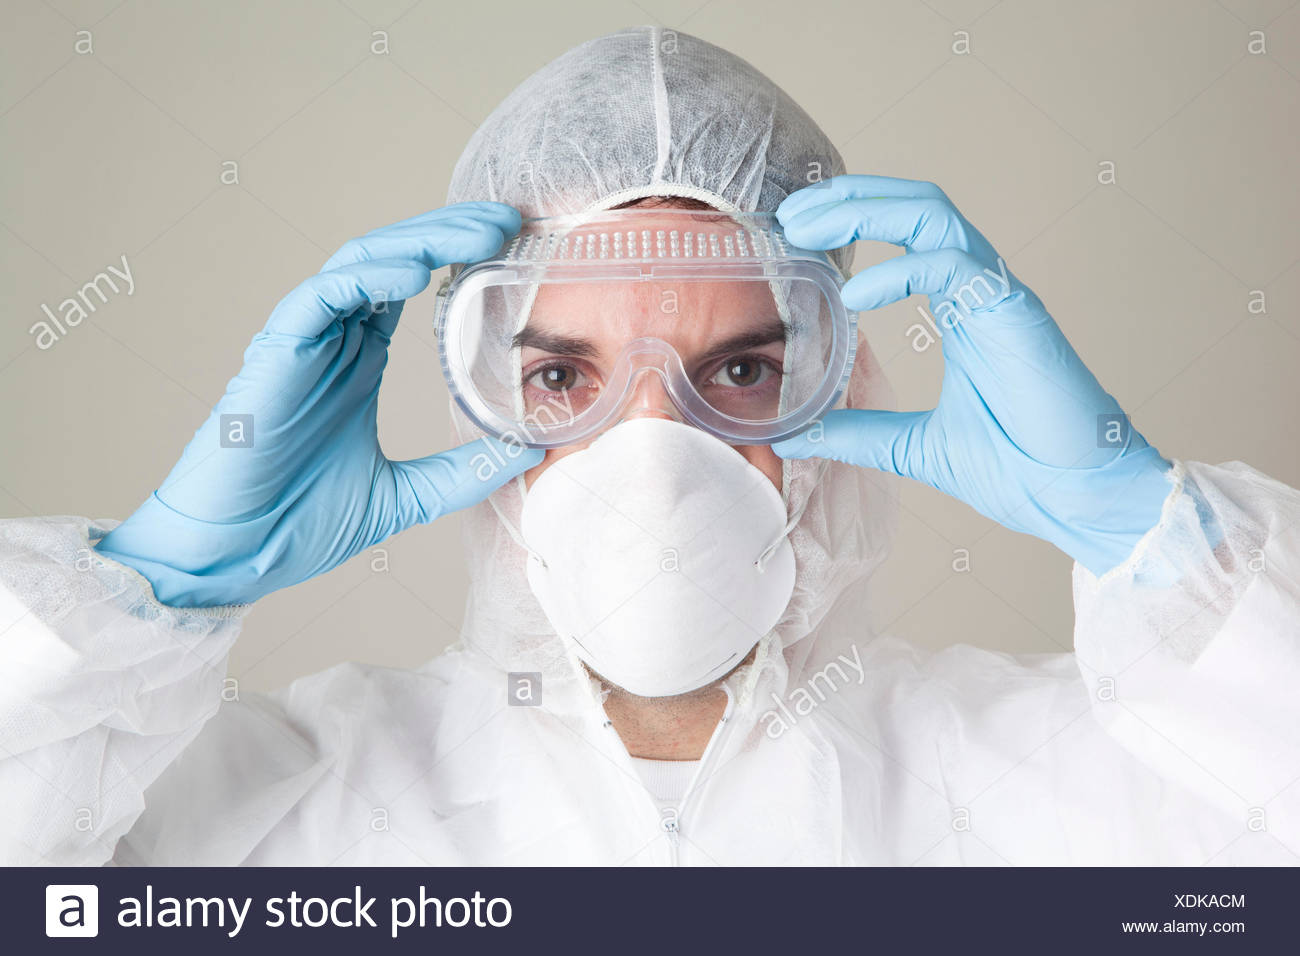 Scientist wearing protective suit - Stock Image